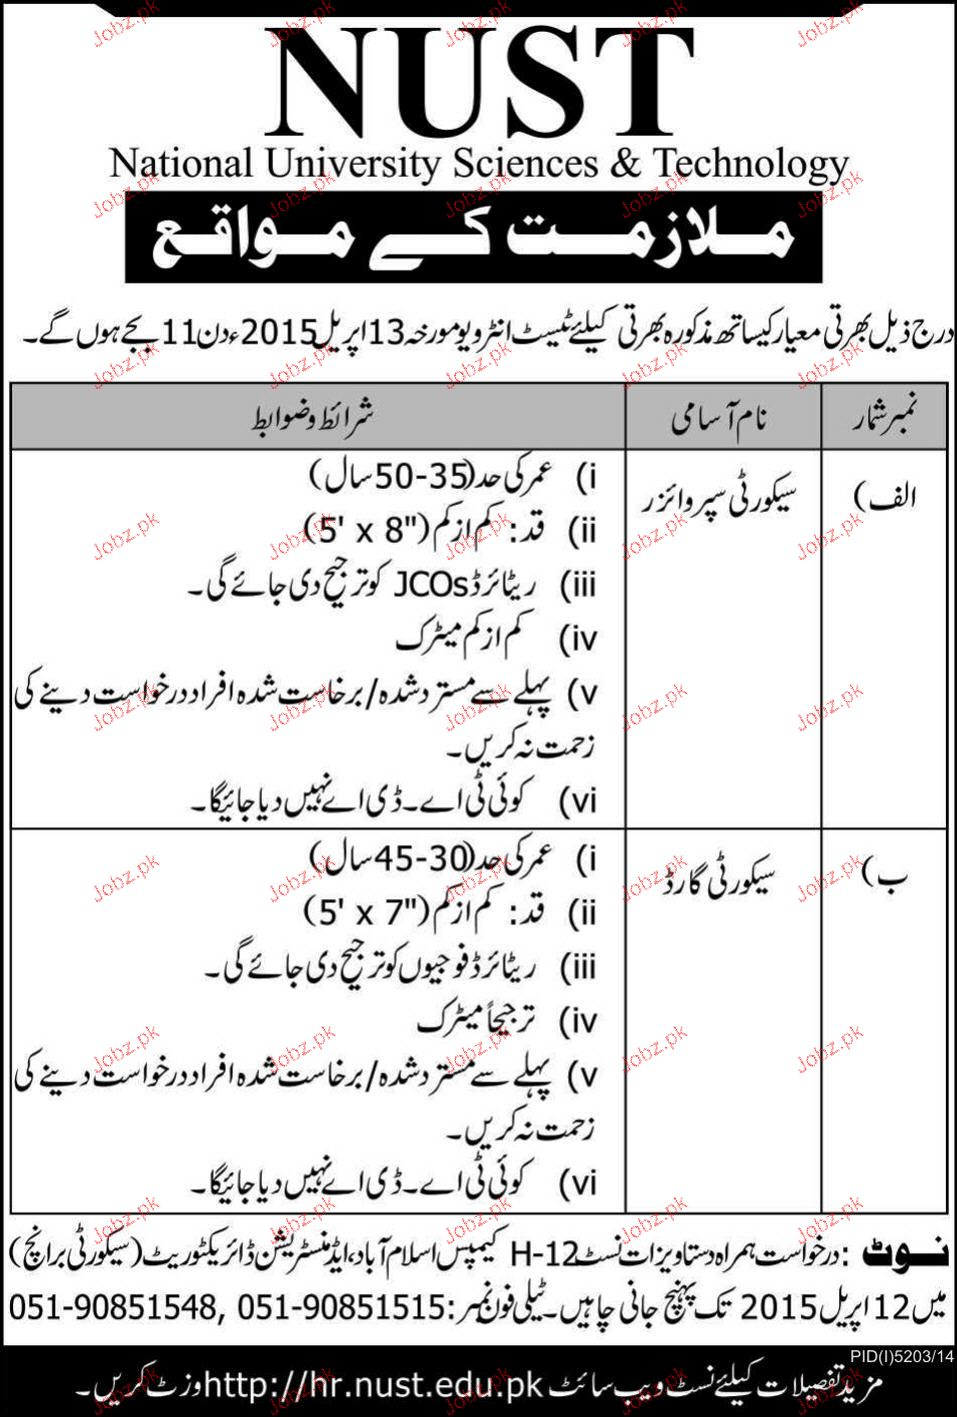 Security Supervisor and Security Guards Job in NUST 2019